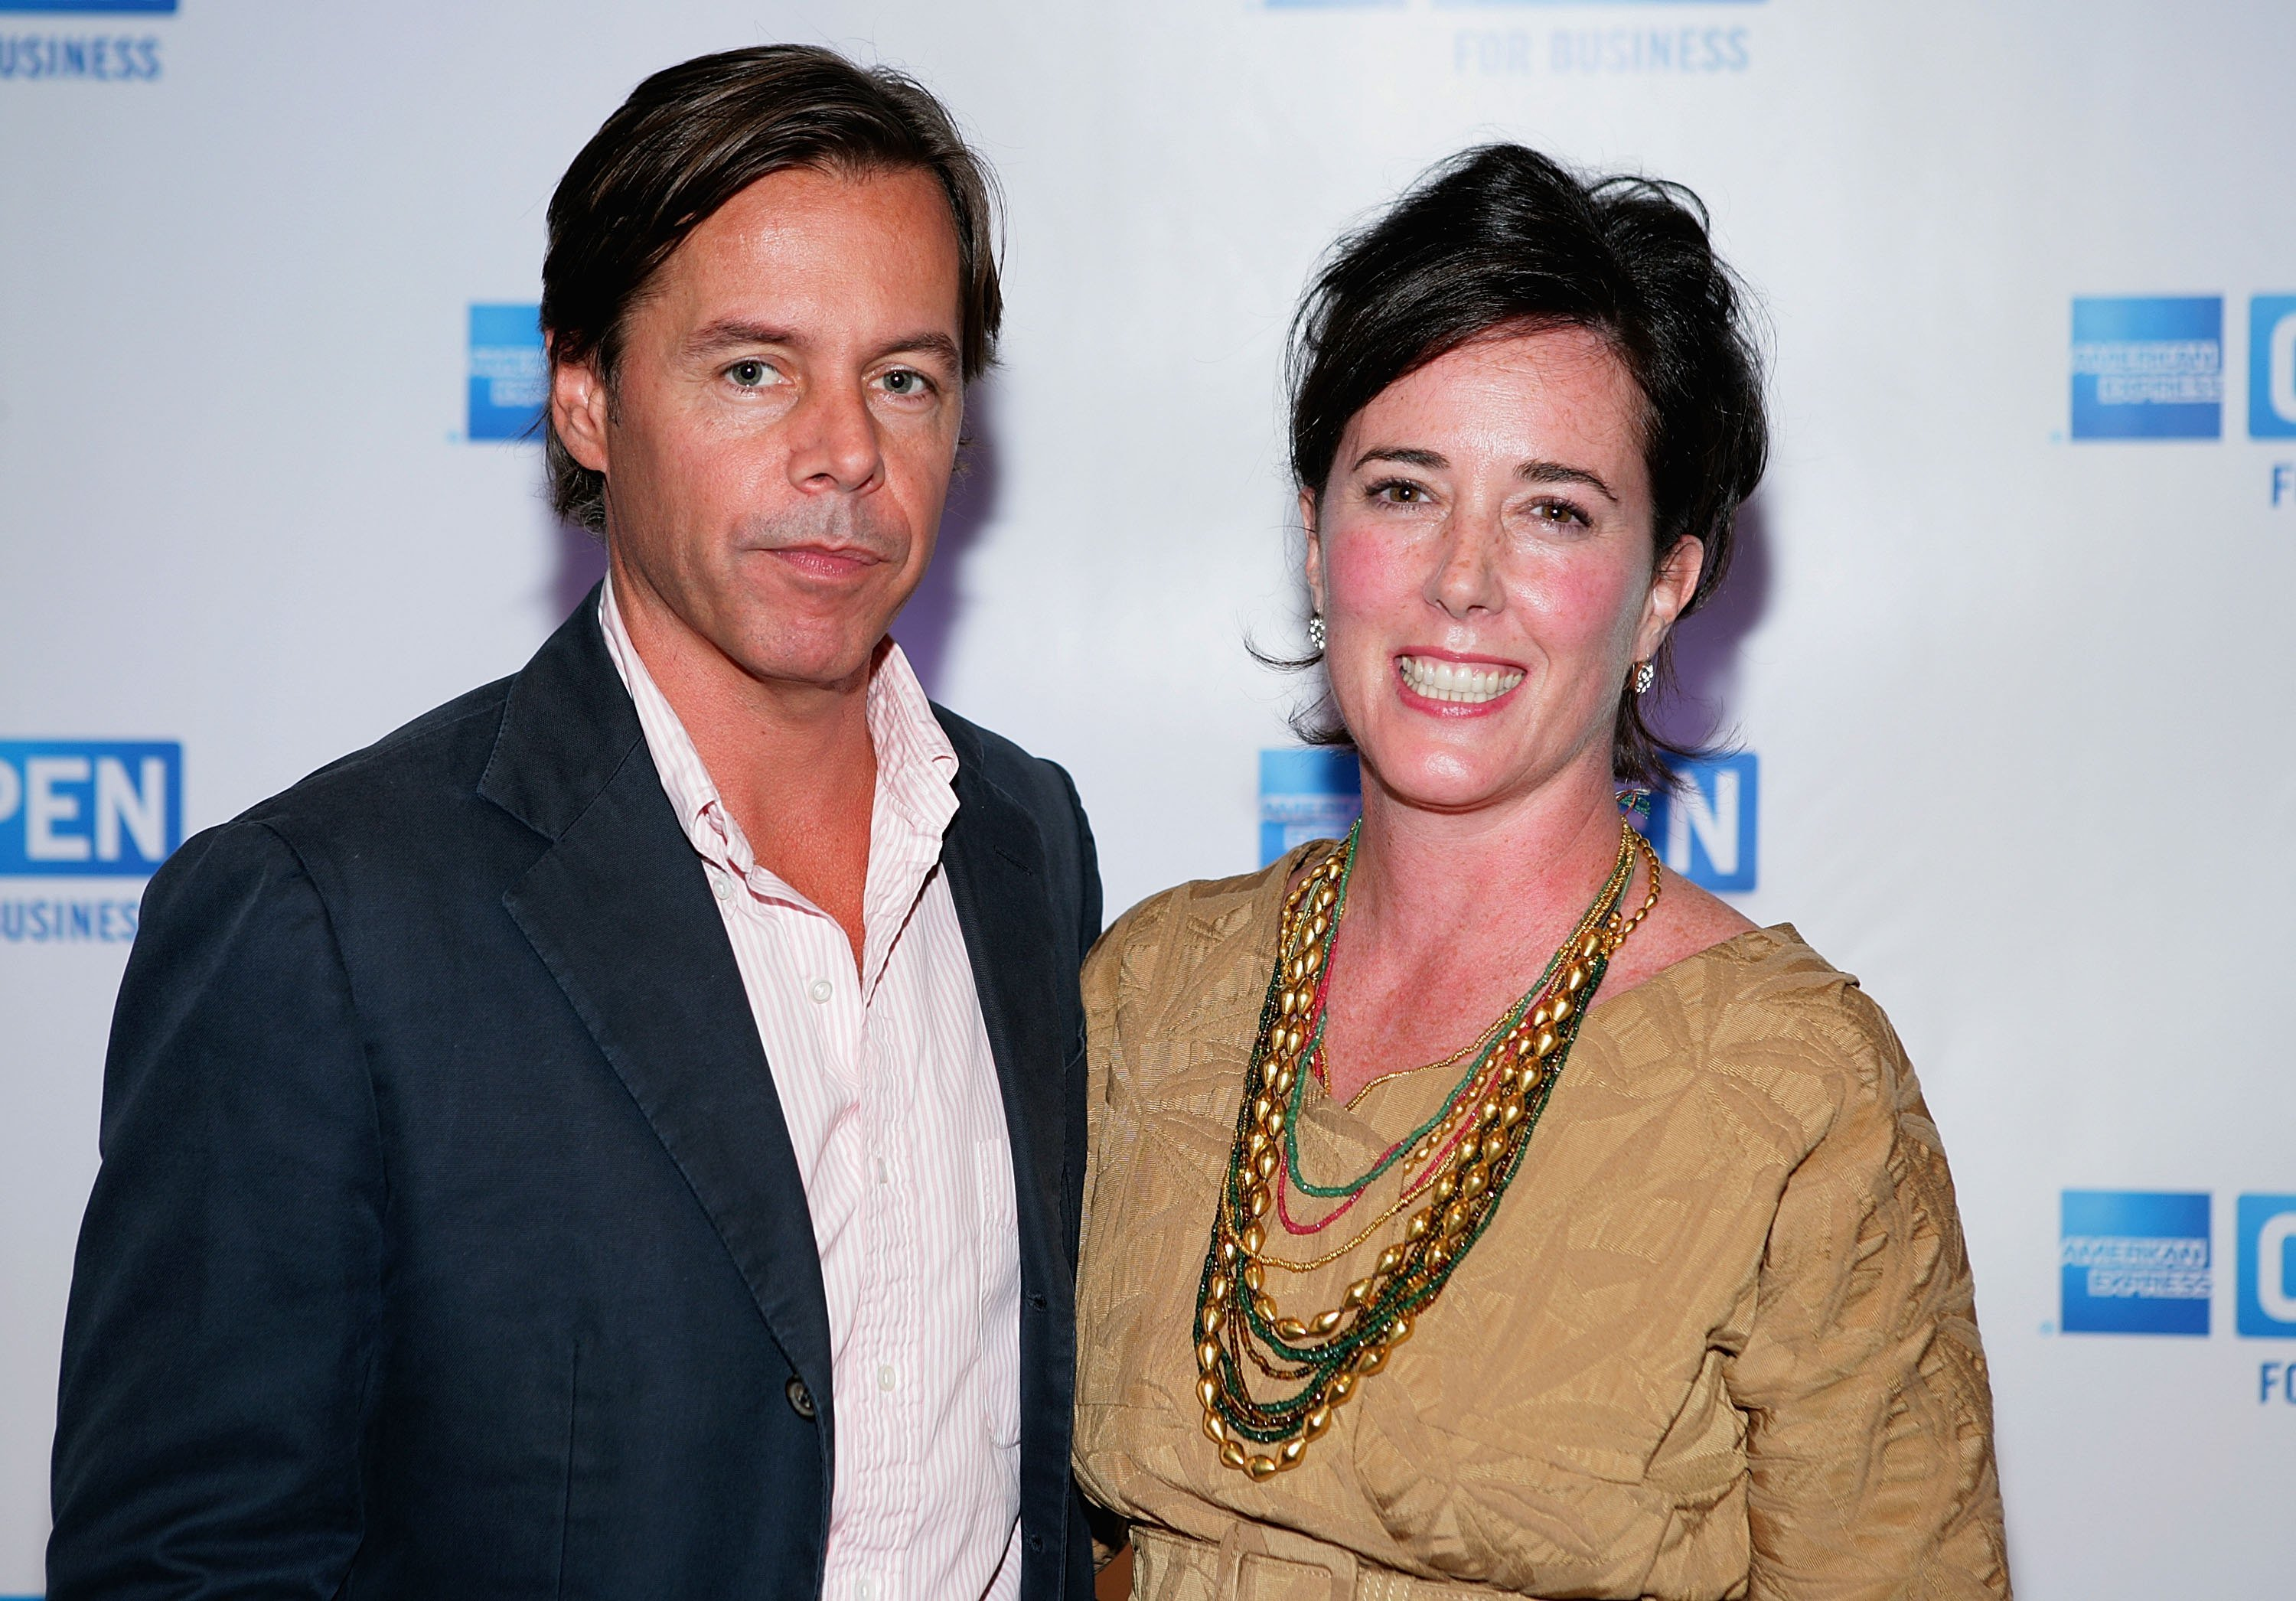 """Andy Spade and Kate Spade attend American Express' """"Making a Name for Yourself"""" at Nokia Theater July 27, 2006. 